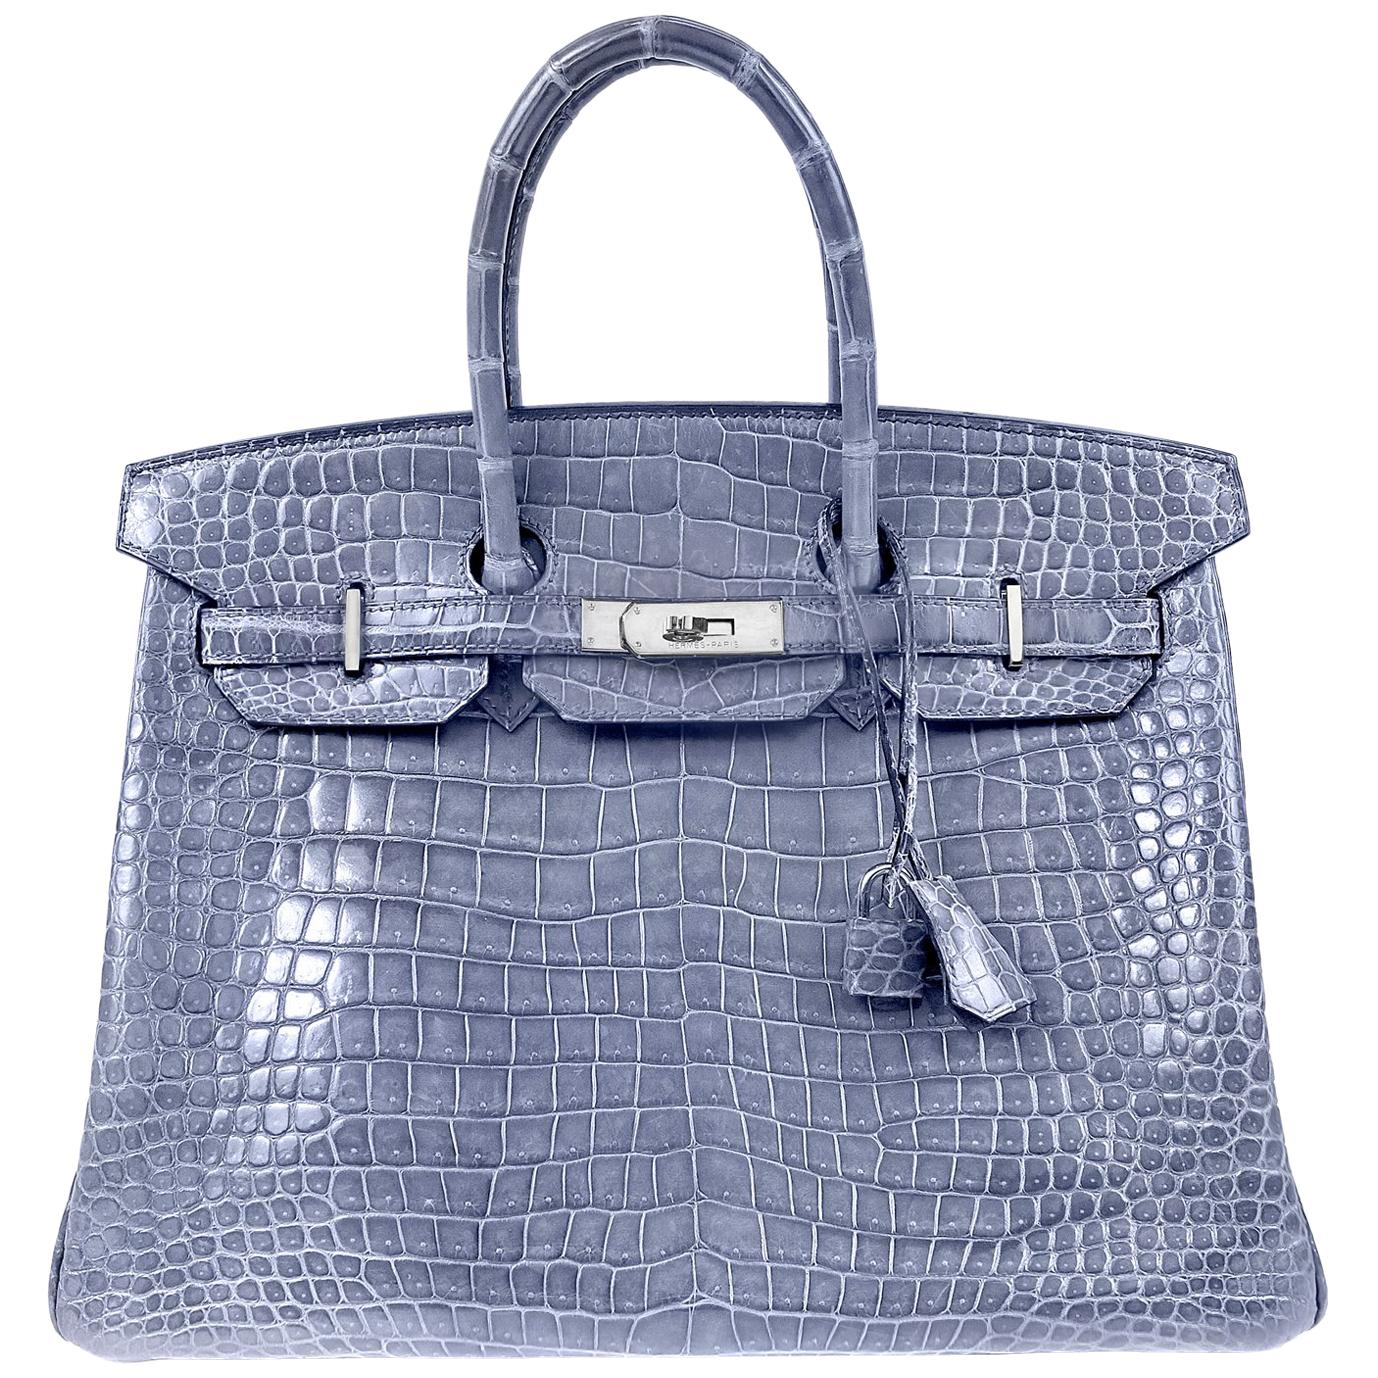 authentic large dustbag designed for hermes handbags 601b8 75477  low cost  hermès blue brighton porosus crocodile 35 cm birkin bag with palladium  313e6 ... cca6a74b27aa3